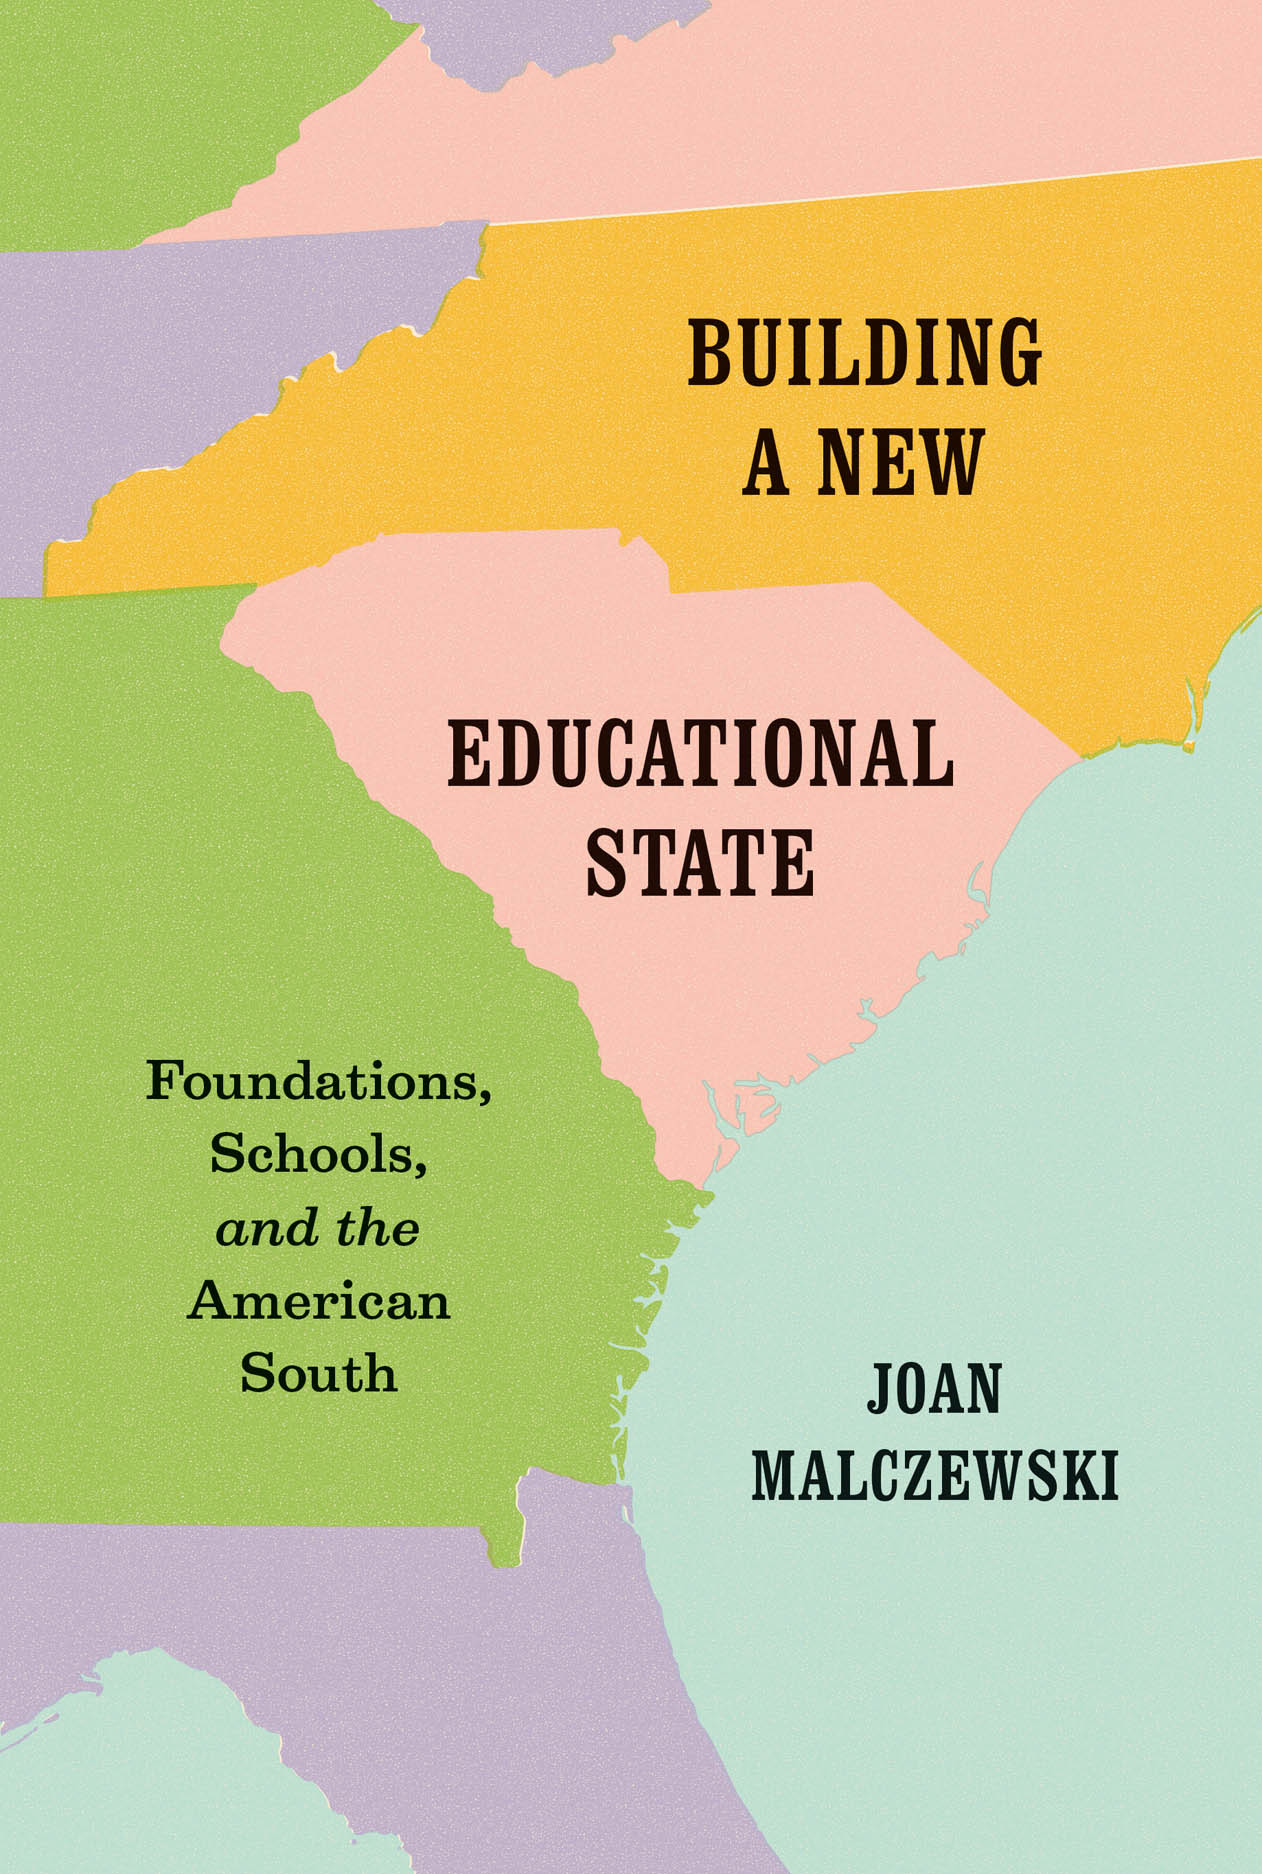 Building a New Educational State: Foundations, Schools, and the American South